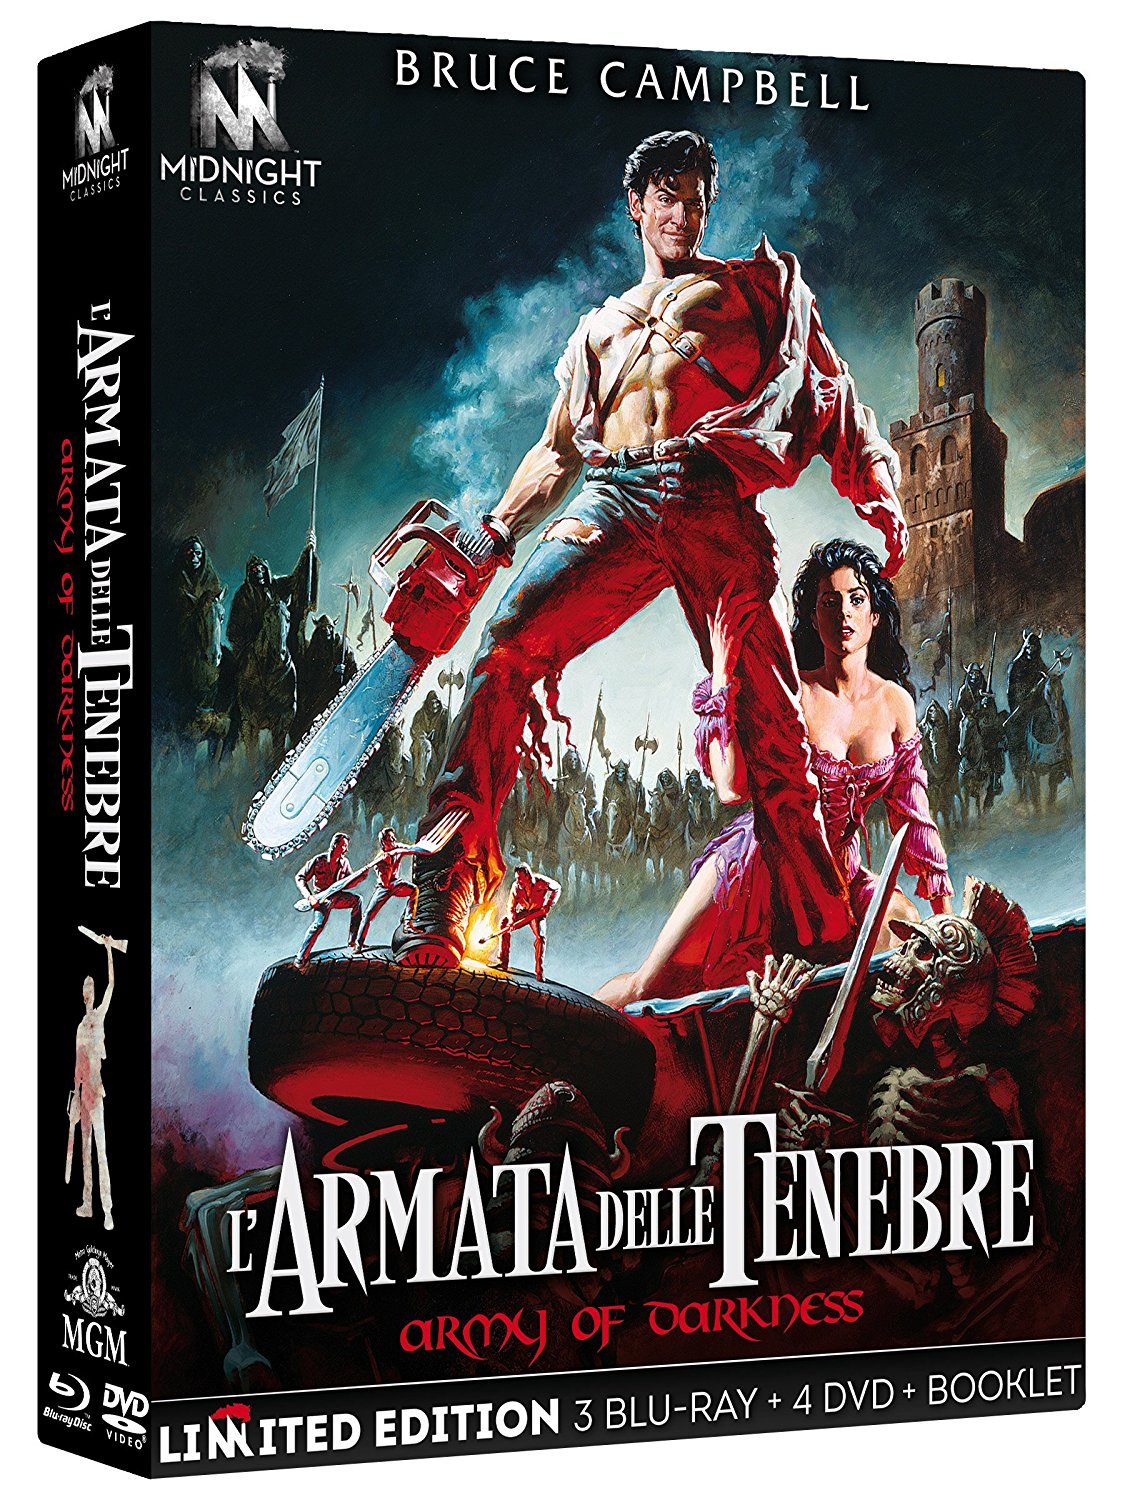 L'ARMATA DELLE TENEBRE (LIMITED EDITION) (3 BLU-RAY+4 DVD+BOOKLET)